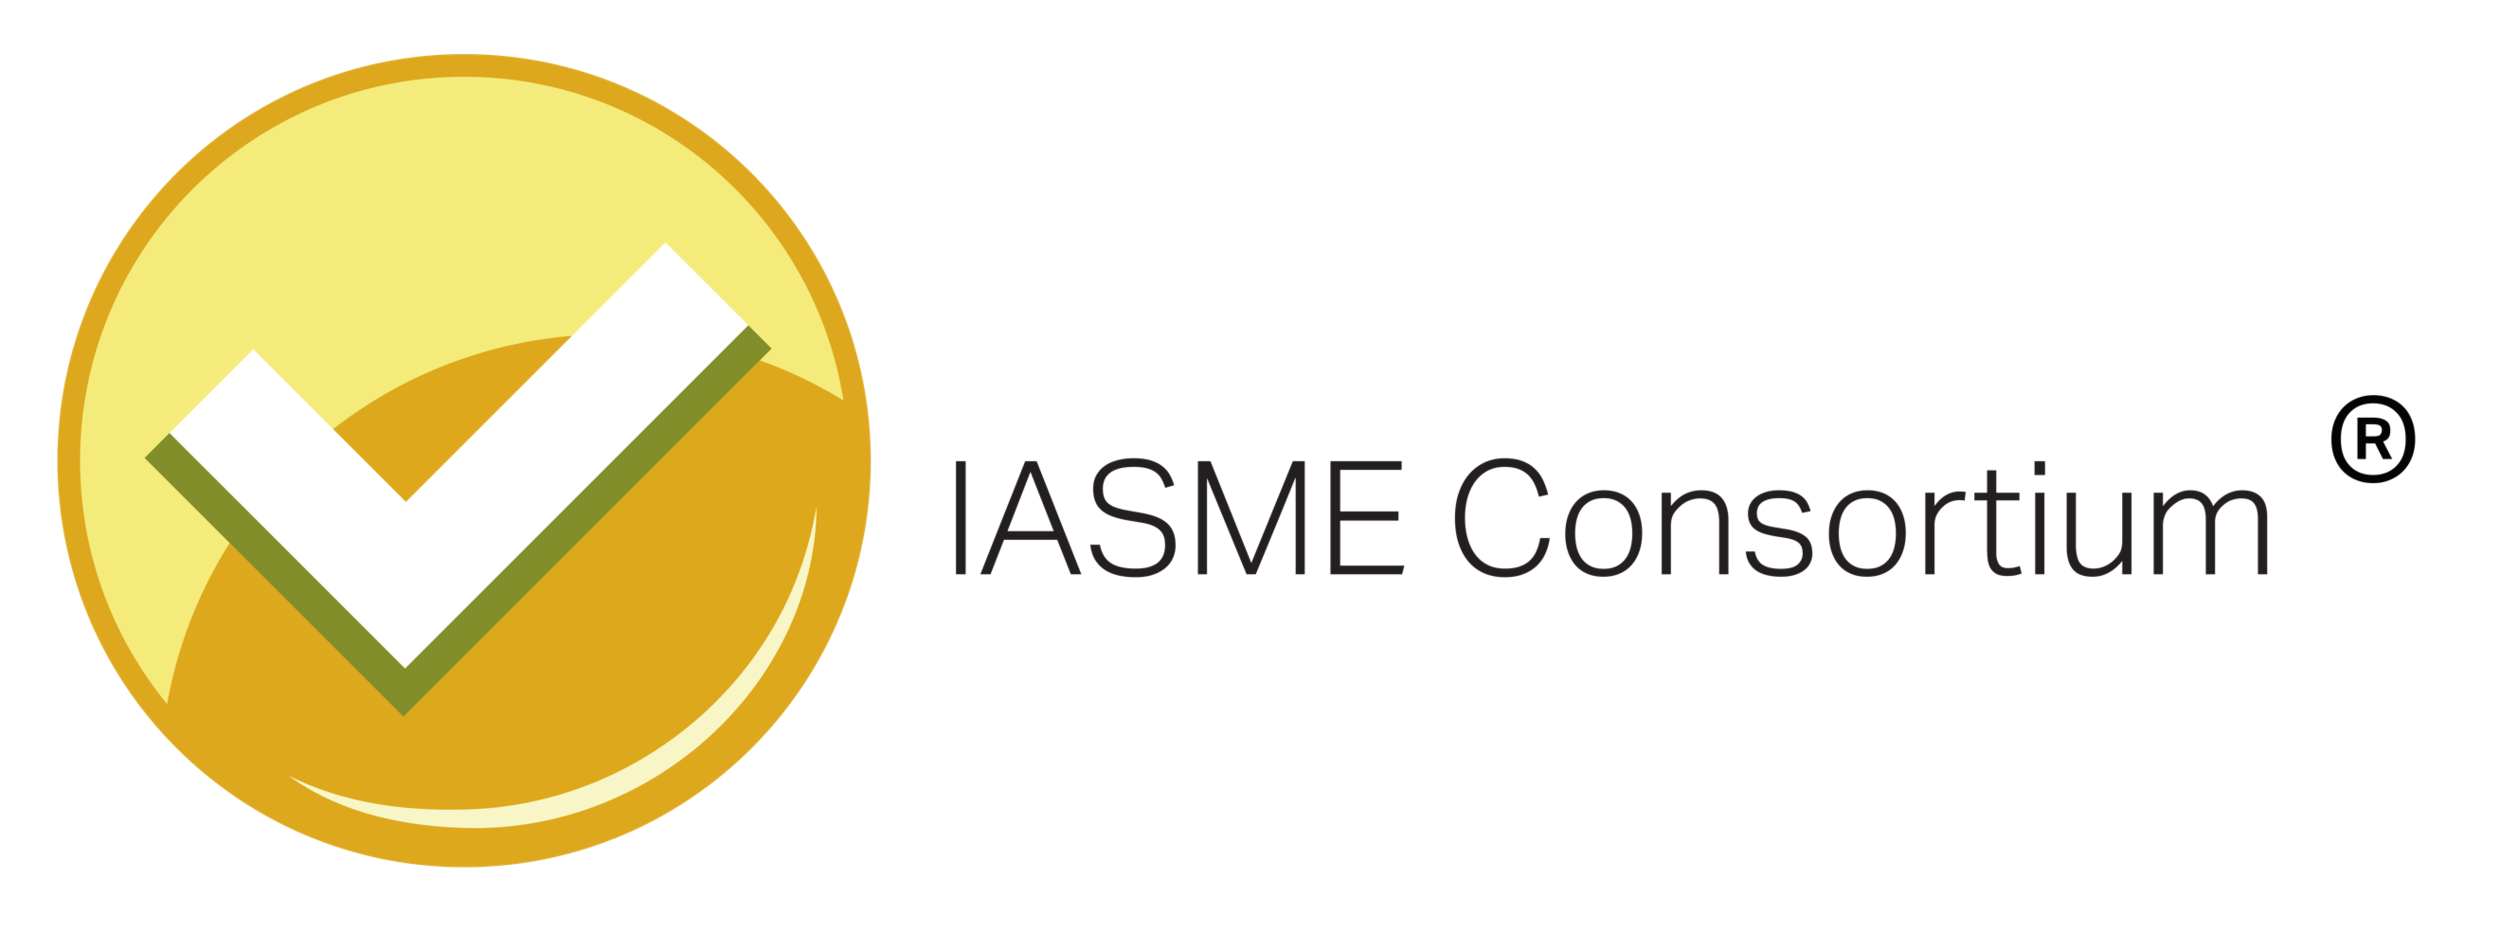 IASME Governance self-assessed - The IASME governance self-assessed certification includes the Cyber Essentials assessment within it as well as an assessment against the requirements of the GDPR.Authentic Associates can help guide you through the process, offering support and advise as required to ensure you gain certification first time.